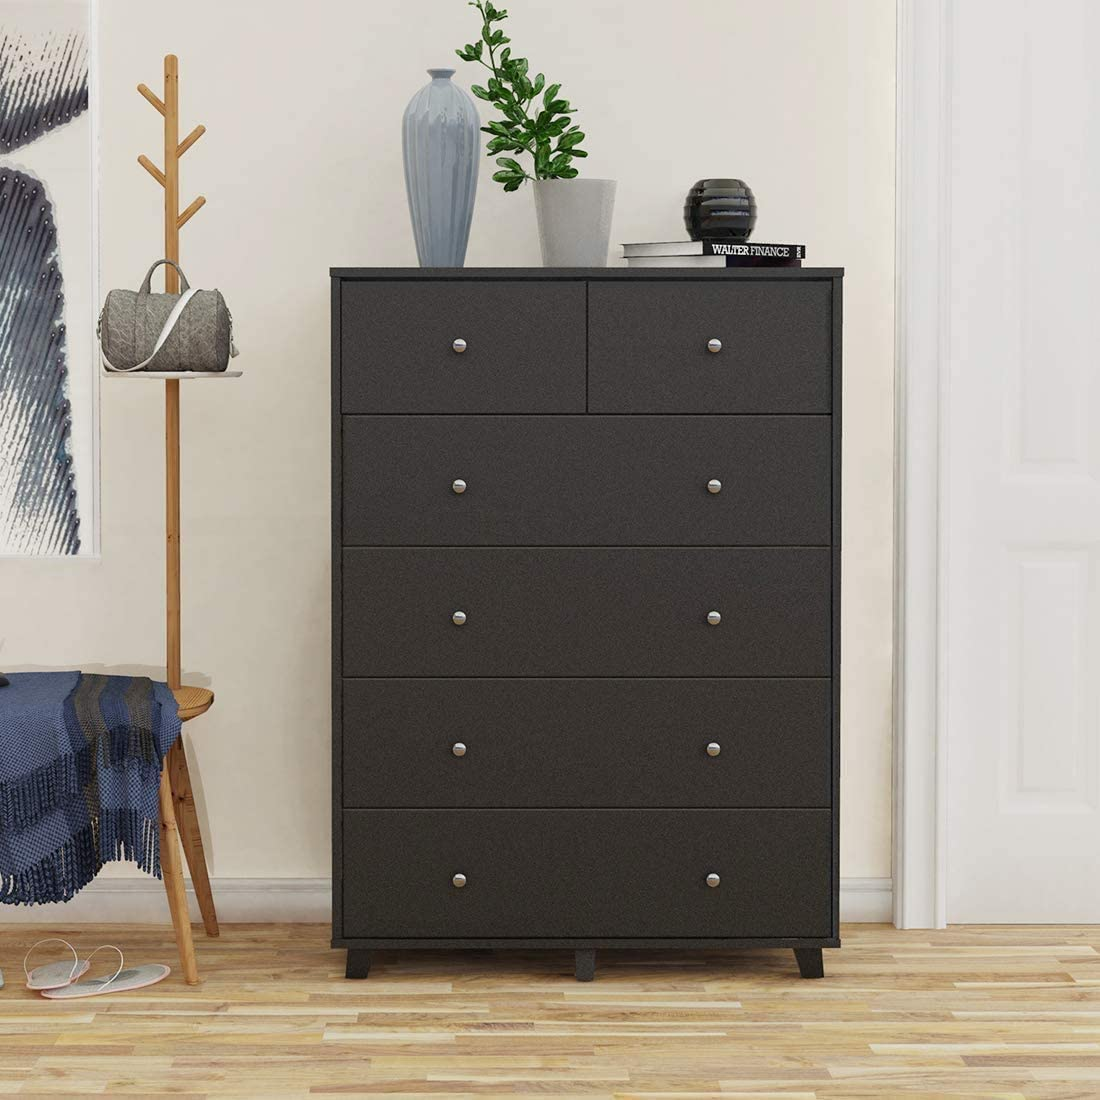 Cozy Castle 6-Drawer Dresser Wood Drawe of Super sale period limited Black Brand new Chest